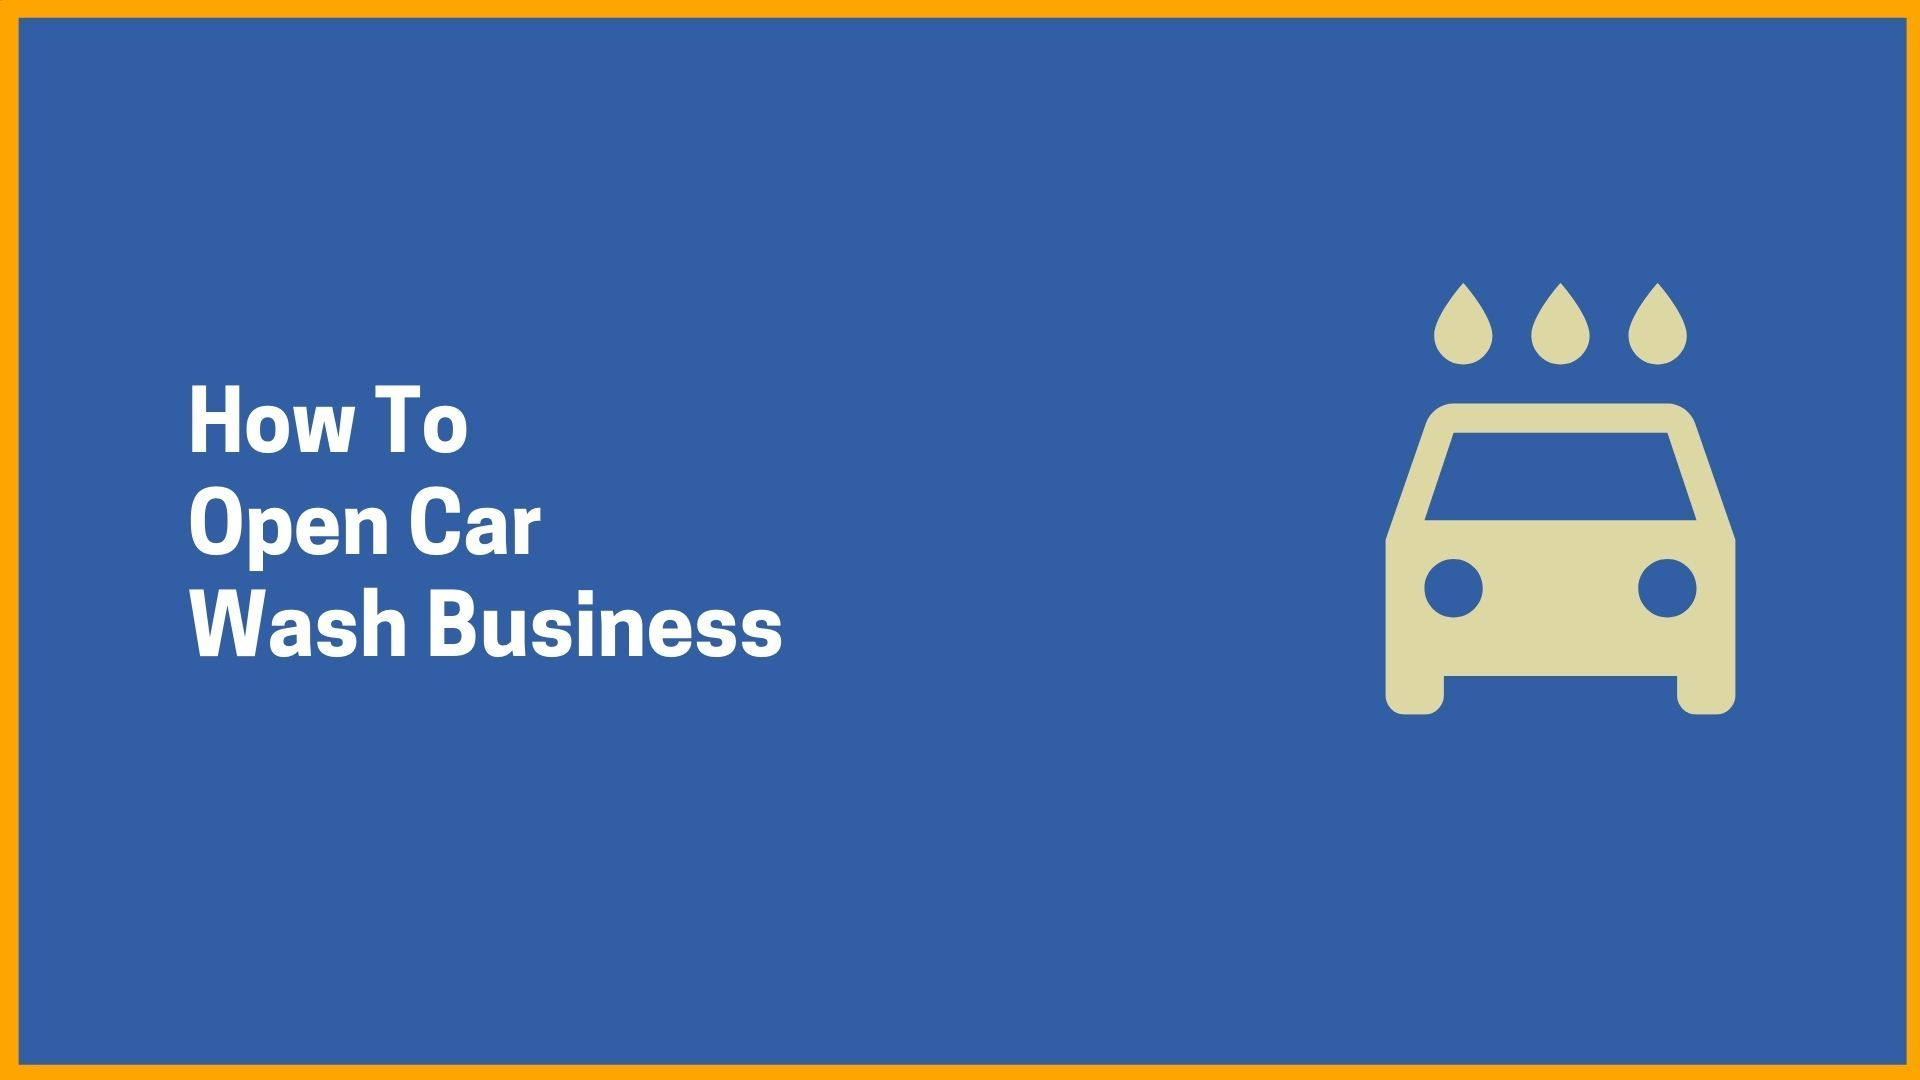 How To Open Car Wash Business